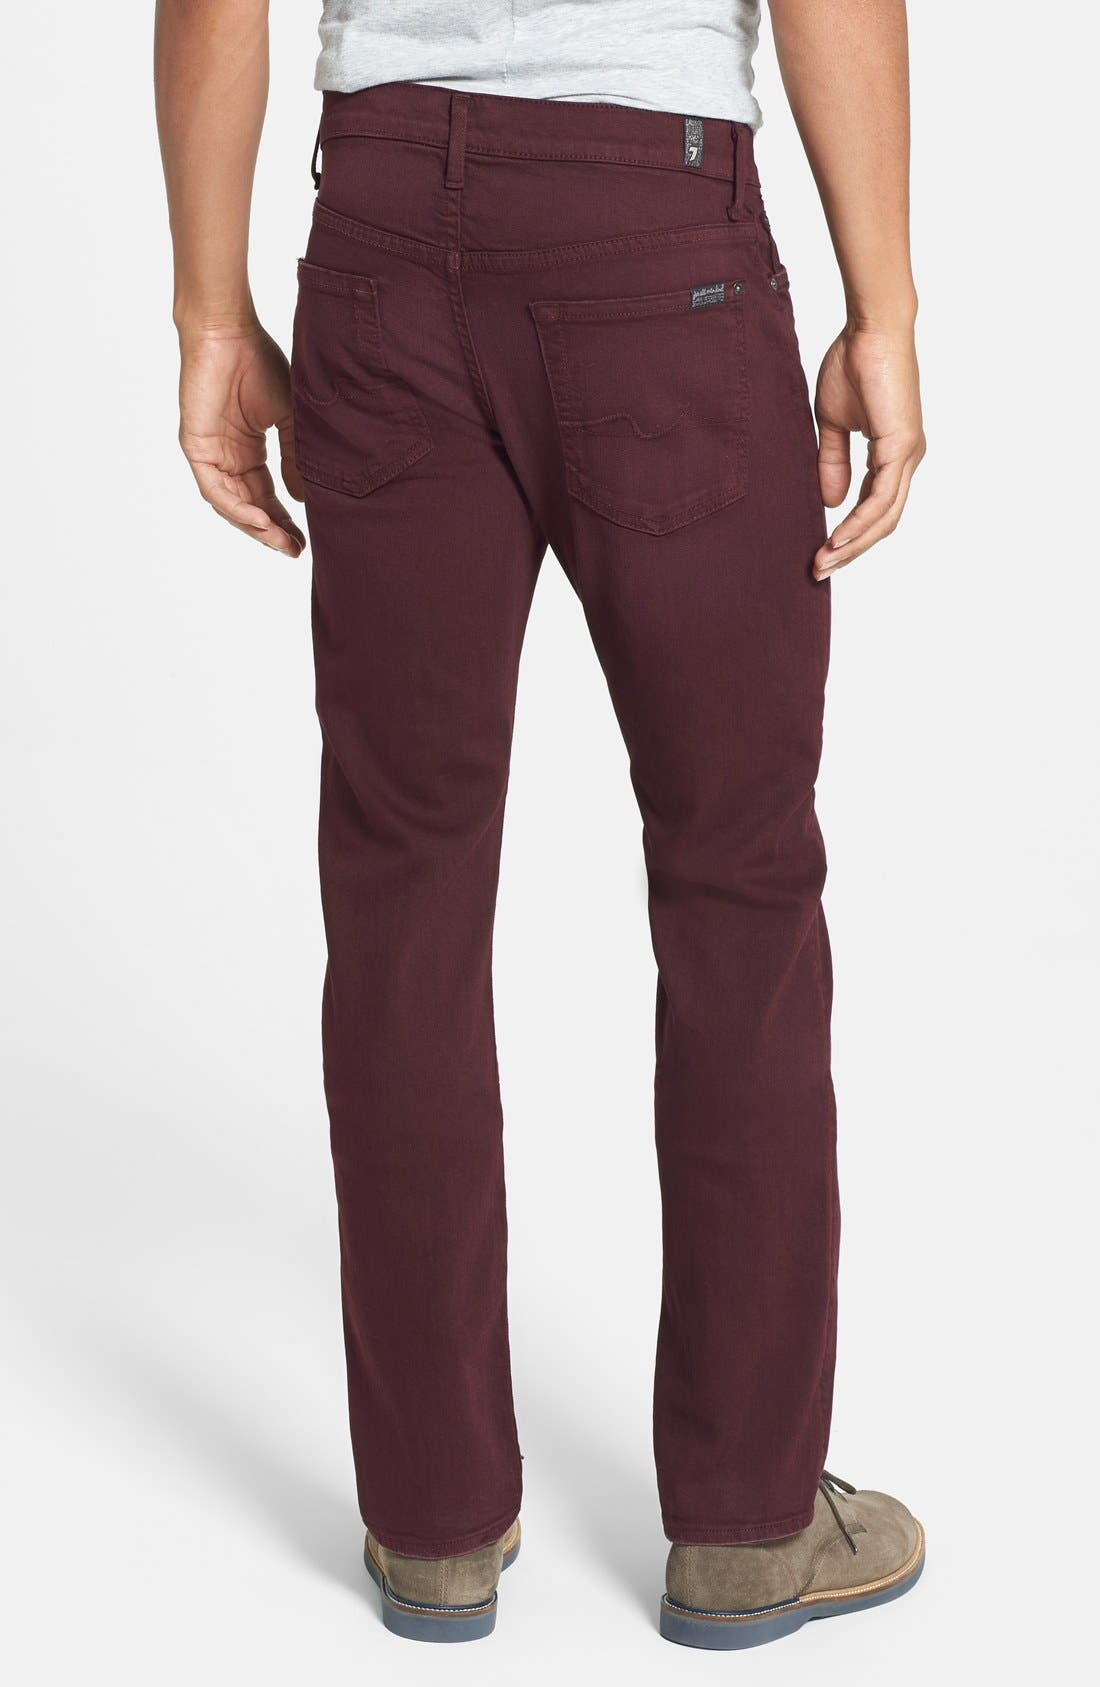 'Slimmy - Luxe Performance' Slim Fit Jeans,                             Alternate thumbnail 50, color,